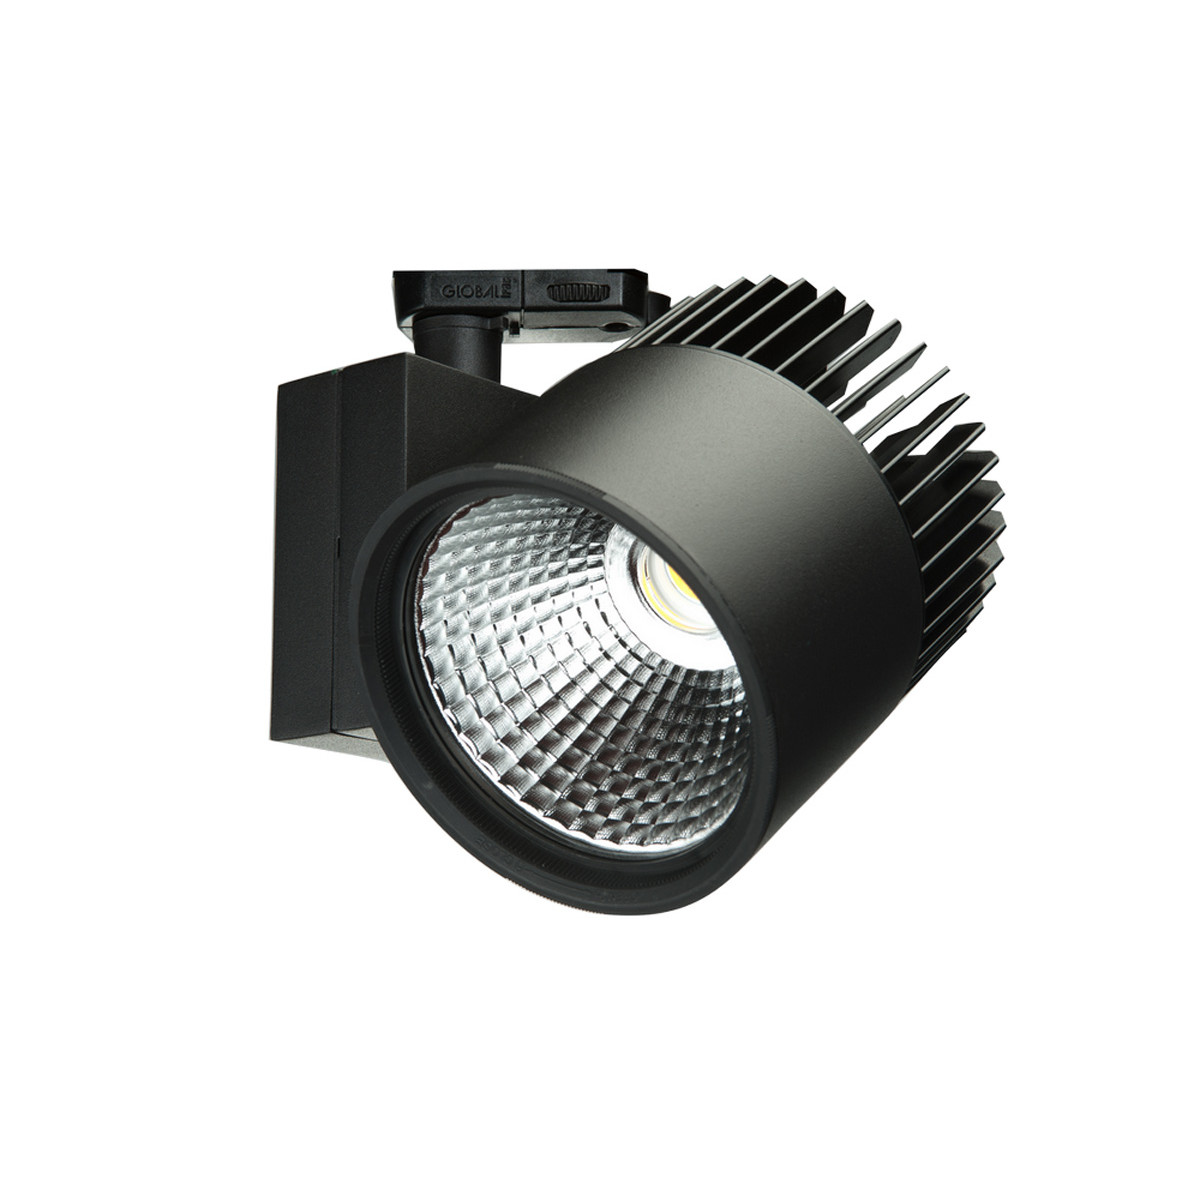 huge selection of 756cb 1d8ce Concentra Dali Multi Circuit LED Track Spot Black up to 4500lm output  available